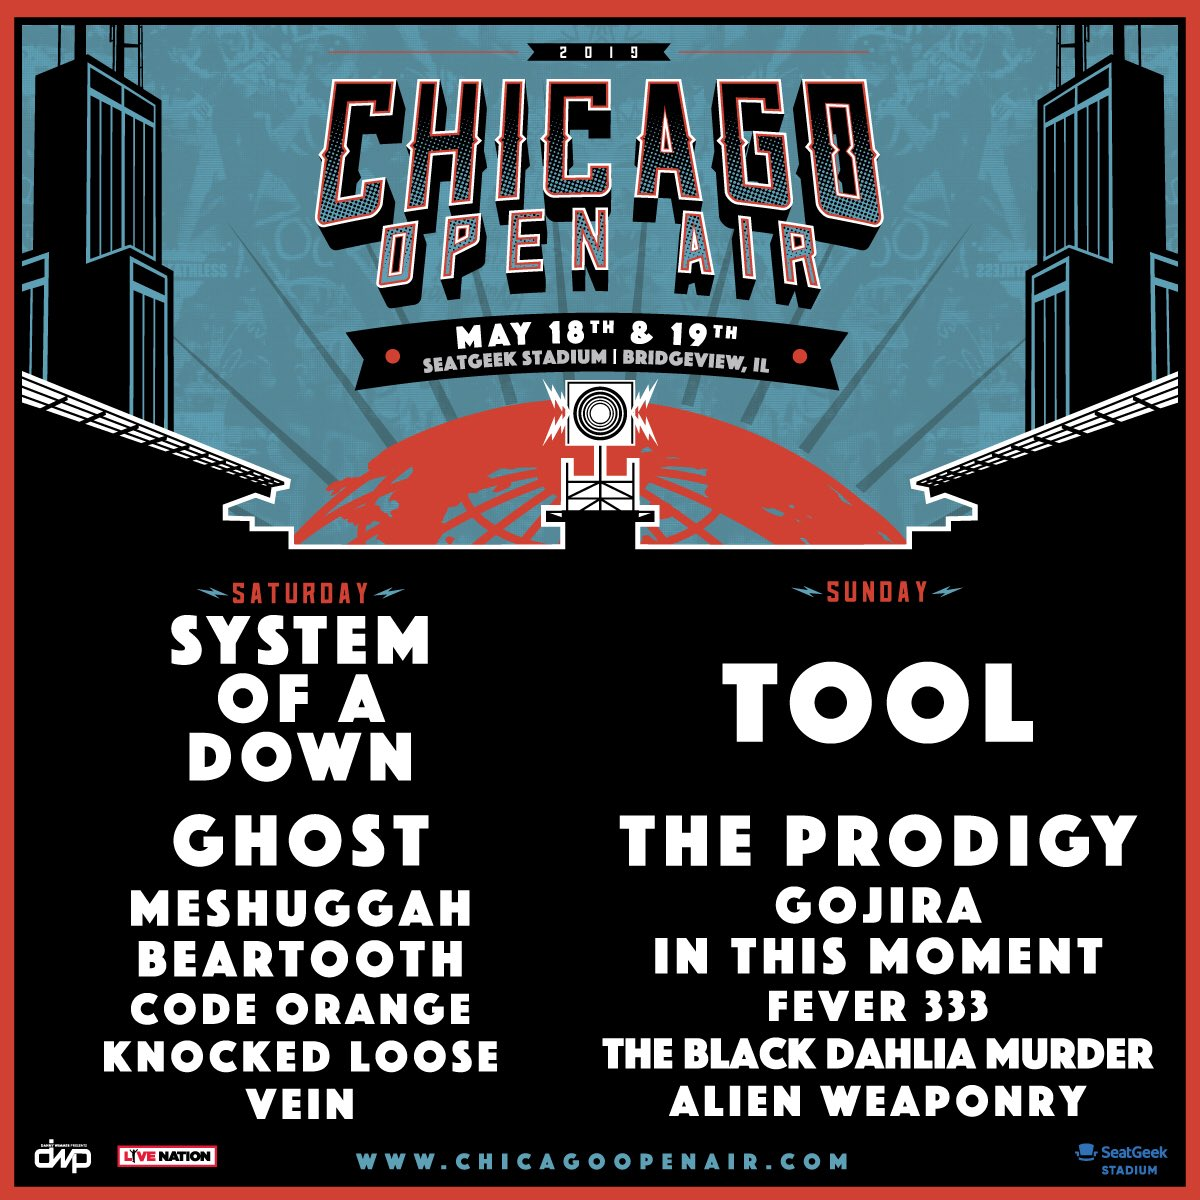 chicago open air 2018